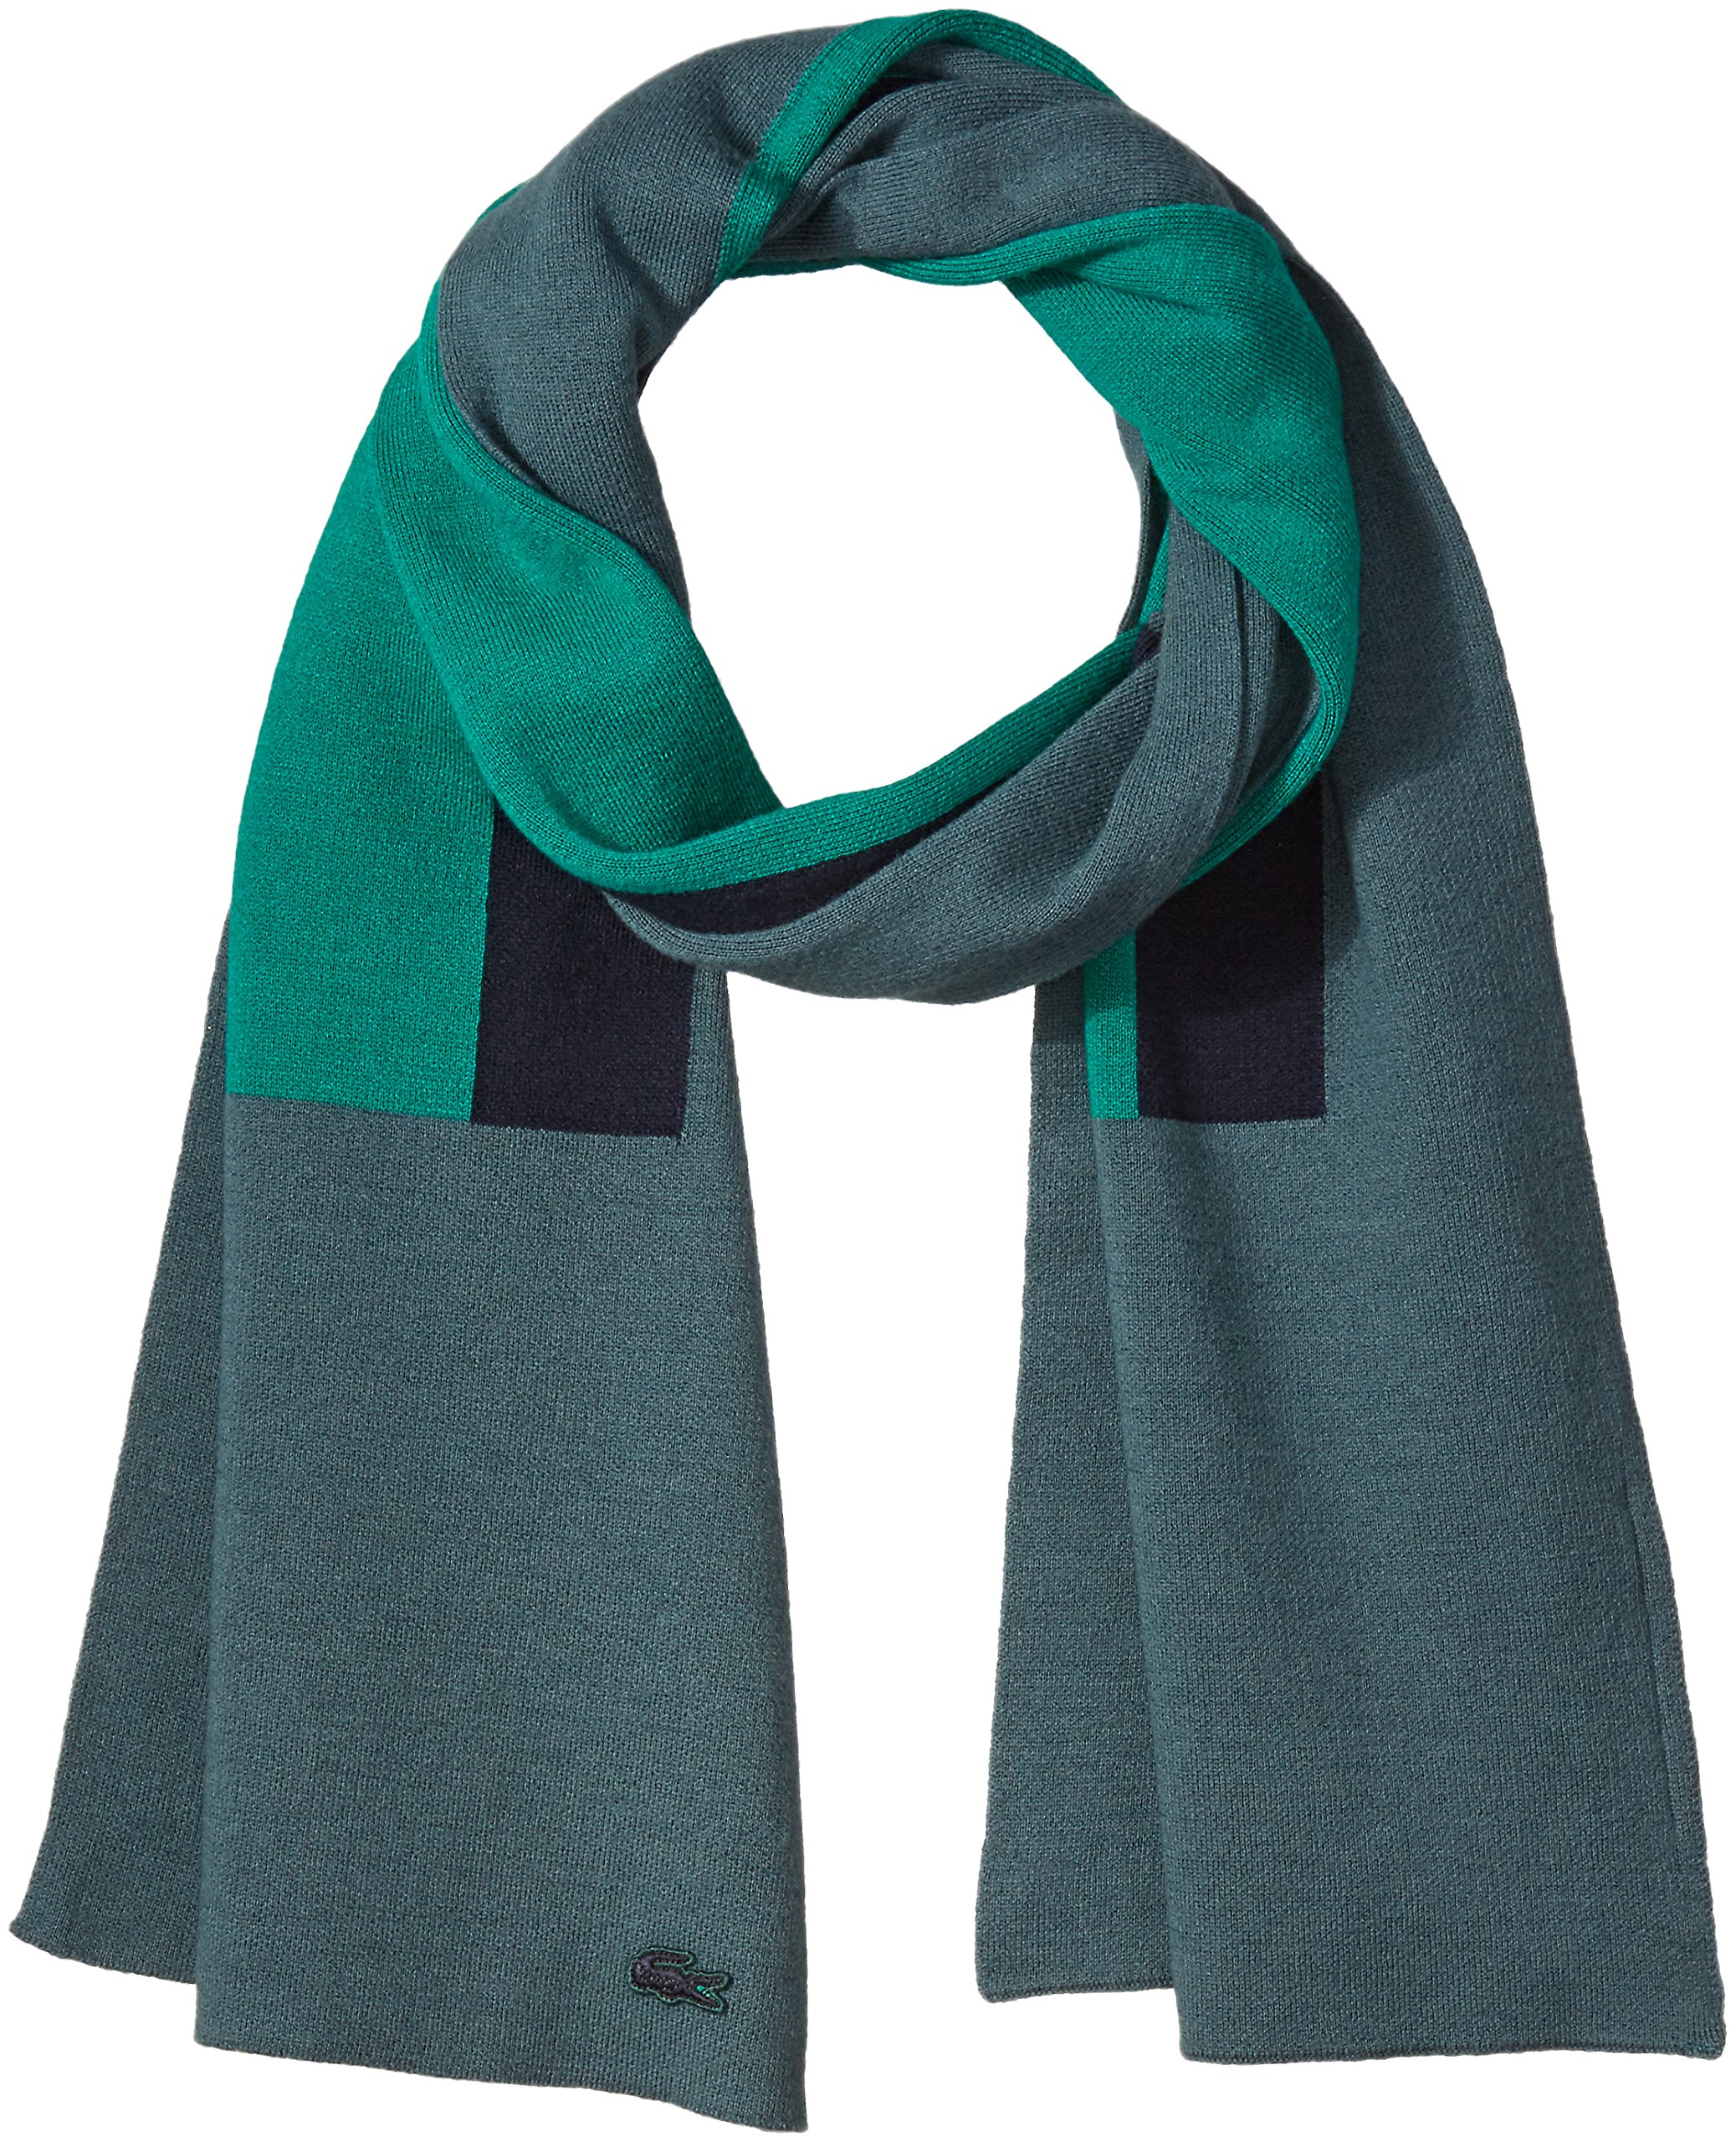 Lacoste Women's Striped Cotton Wool Scarf, Kelp/Chives/Navy Blue, One Size